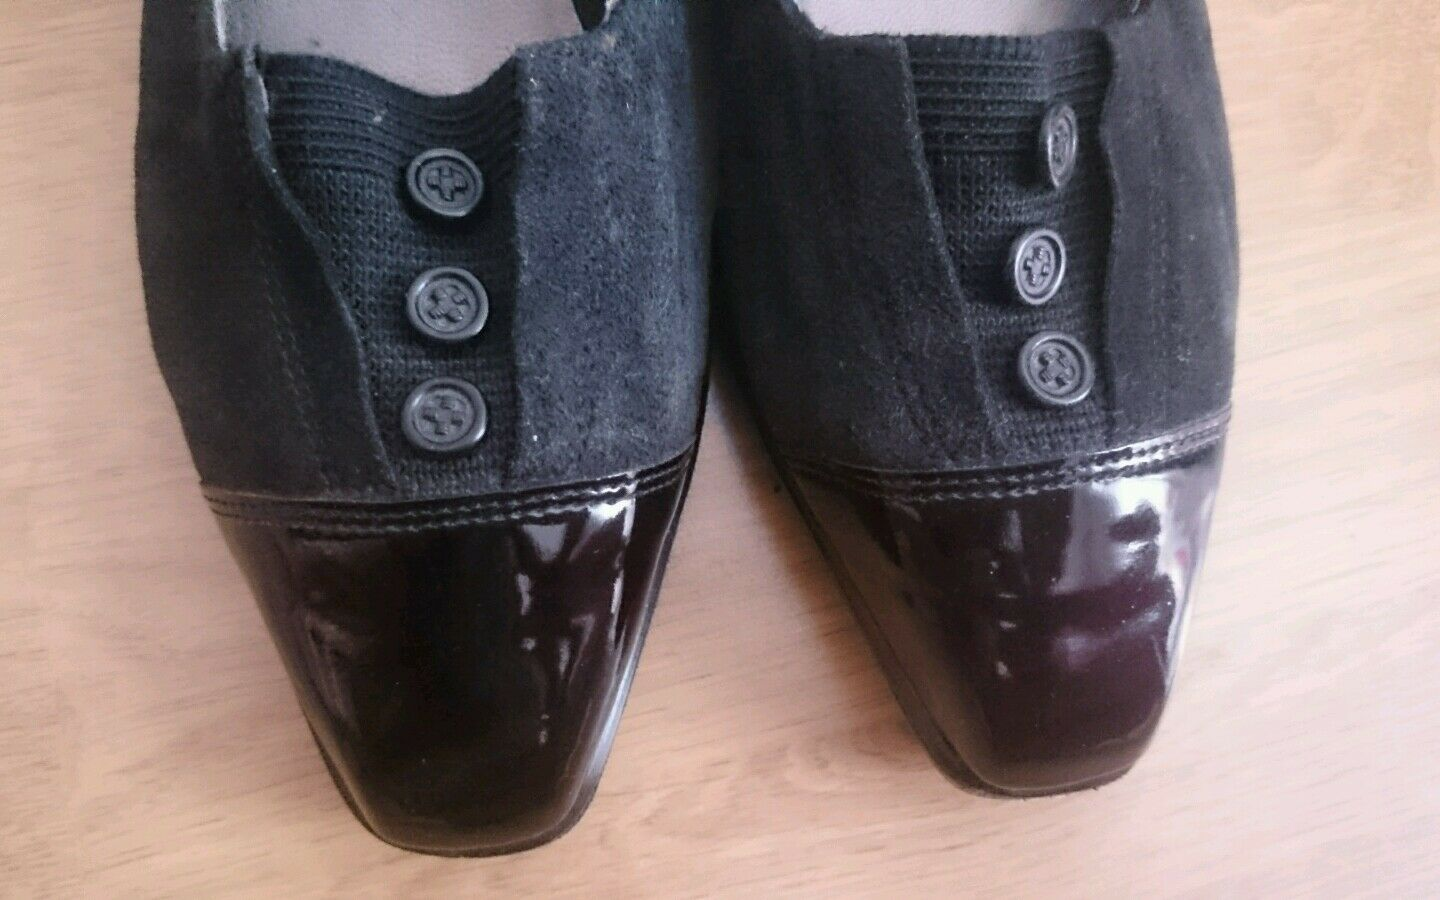 SALAMENDER chaussures Taille 38 (5 F) 1mal boisson.